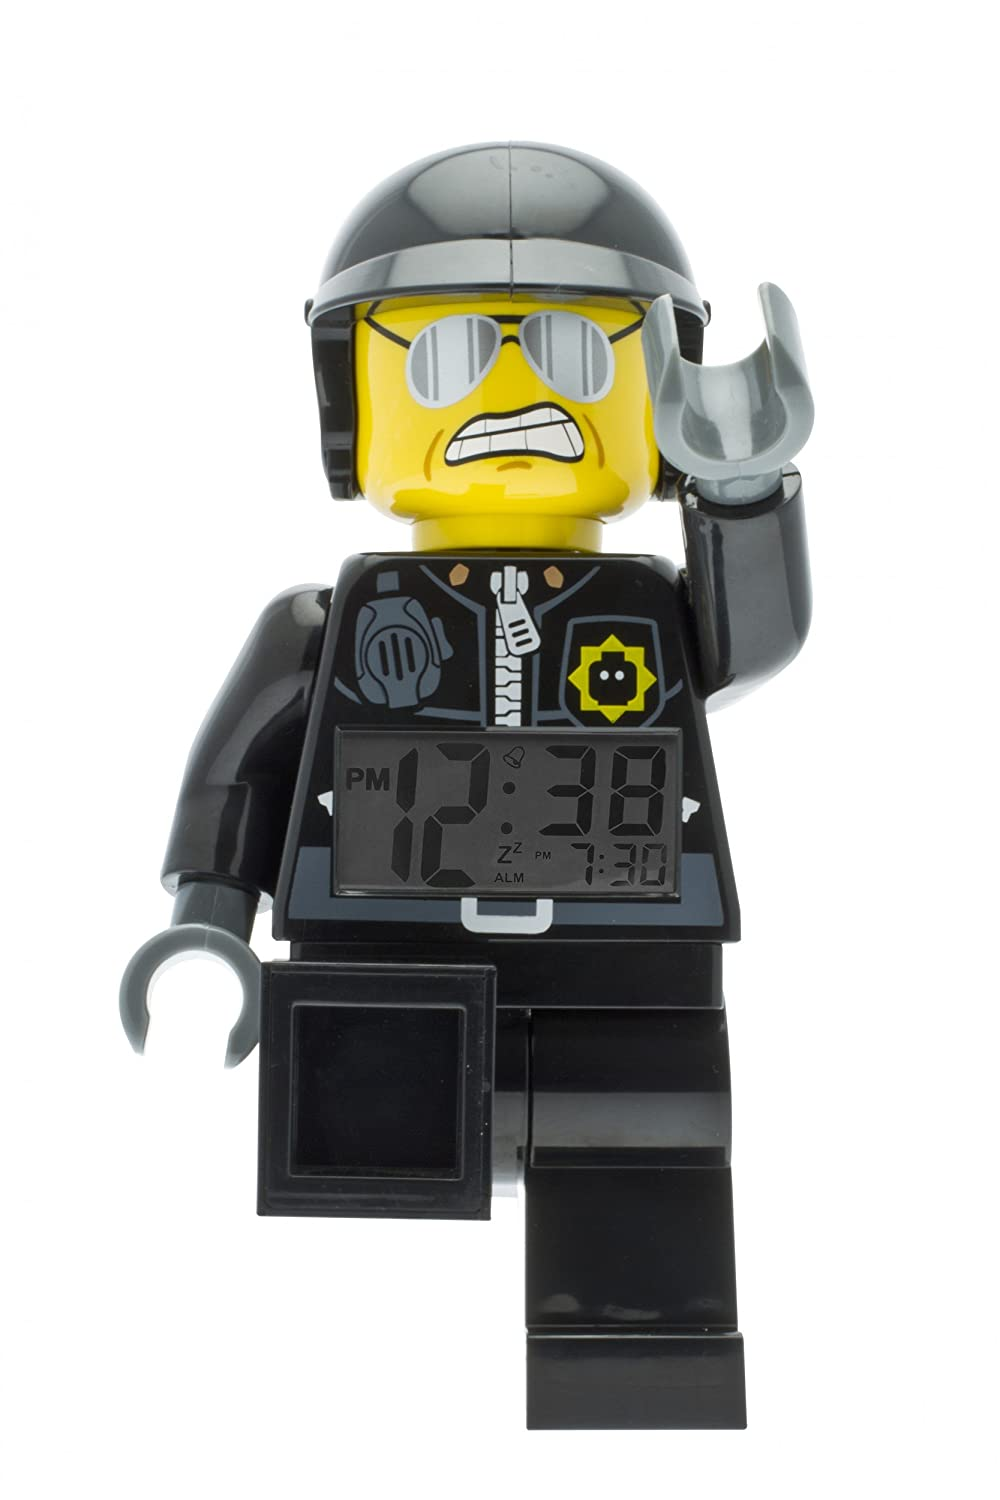 LEGO Movie Bad Cop Kids Minifigure Light Up Alarm Clock plastic boy girl black//gray official 9009952 9.5 inches tall LCD display